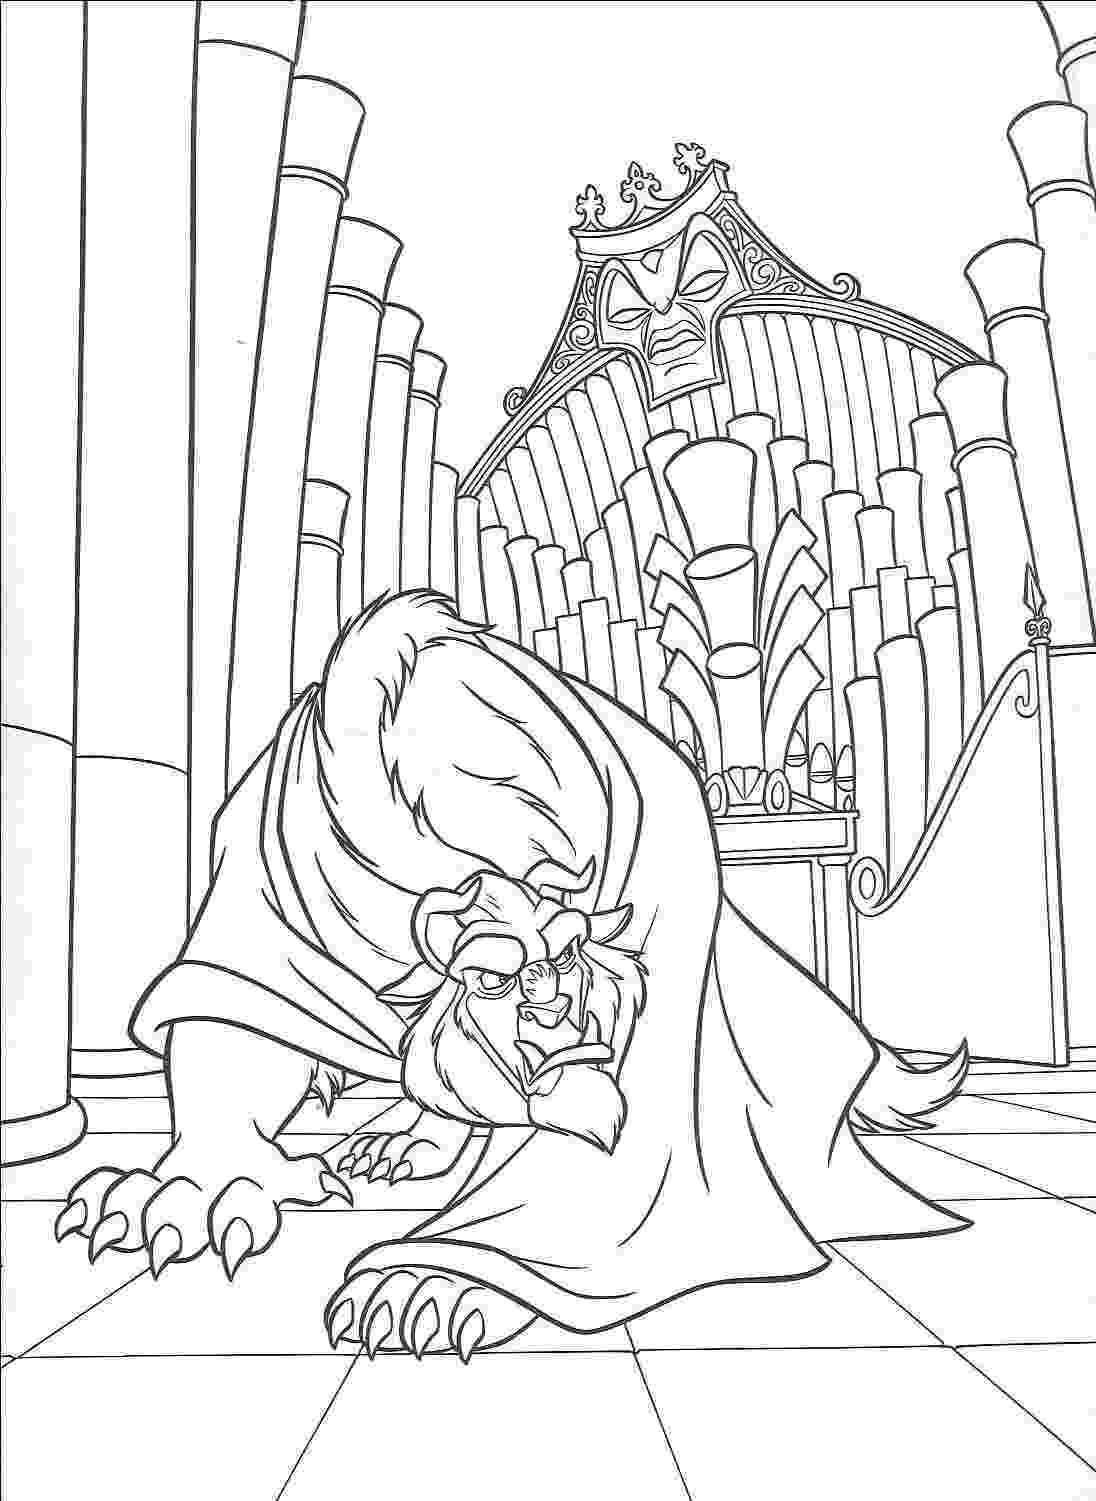 beauty and the beast coloring pages printable coloring area beautiful beauty and the beast beauty the coloring and beast pages